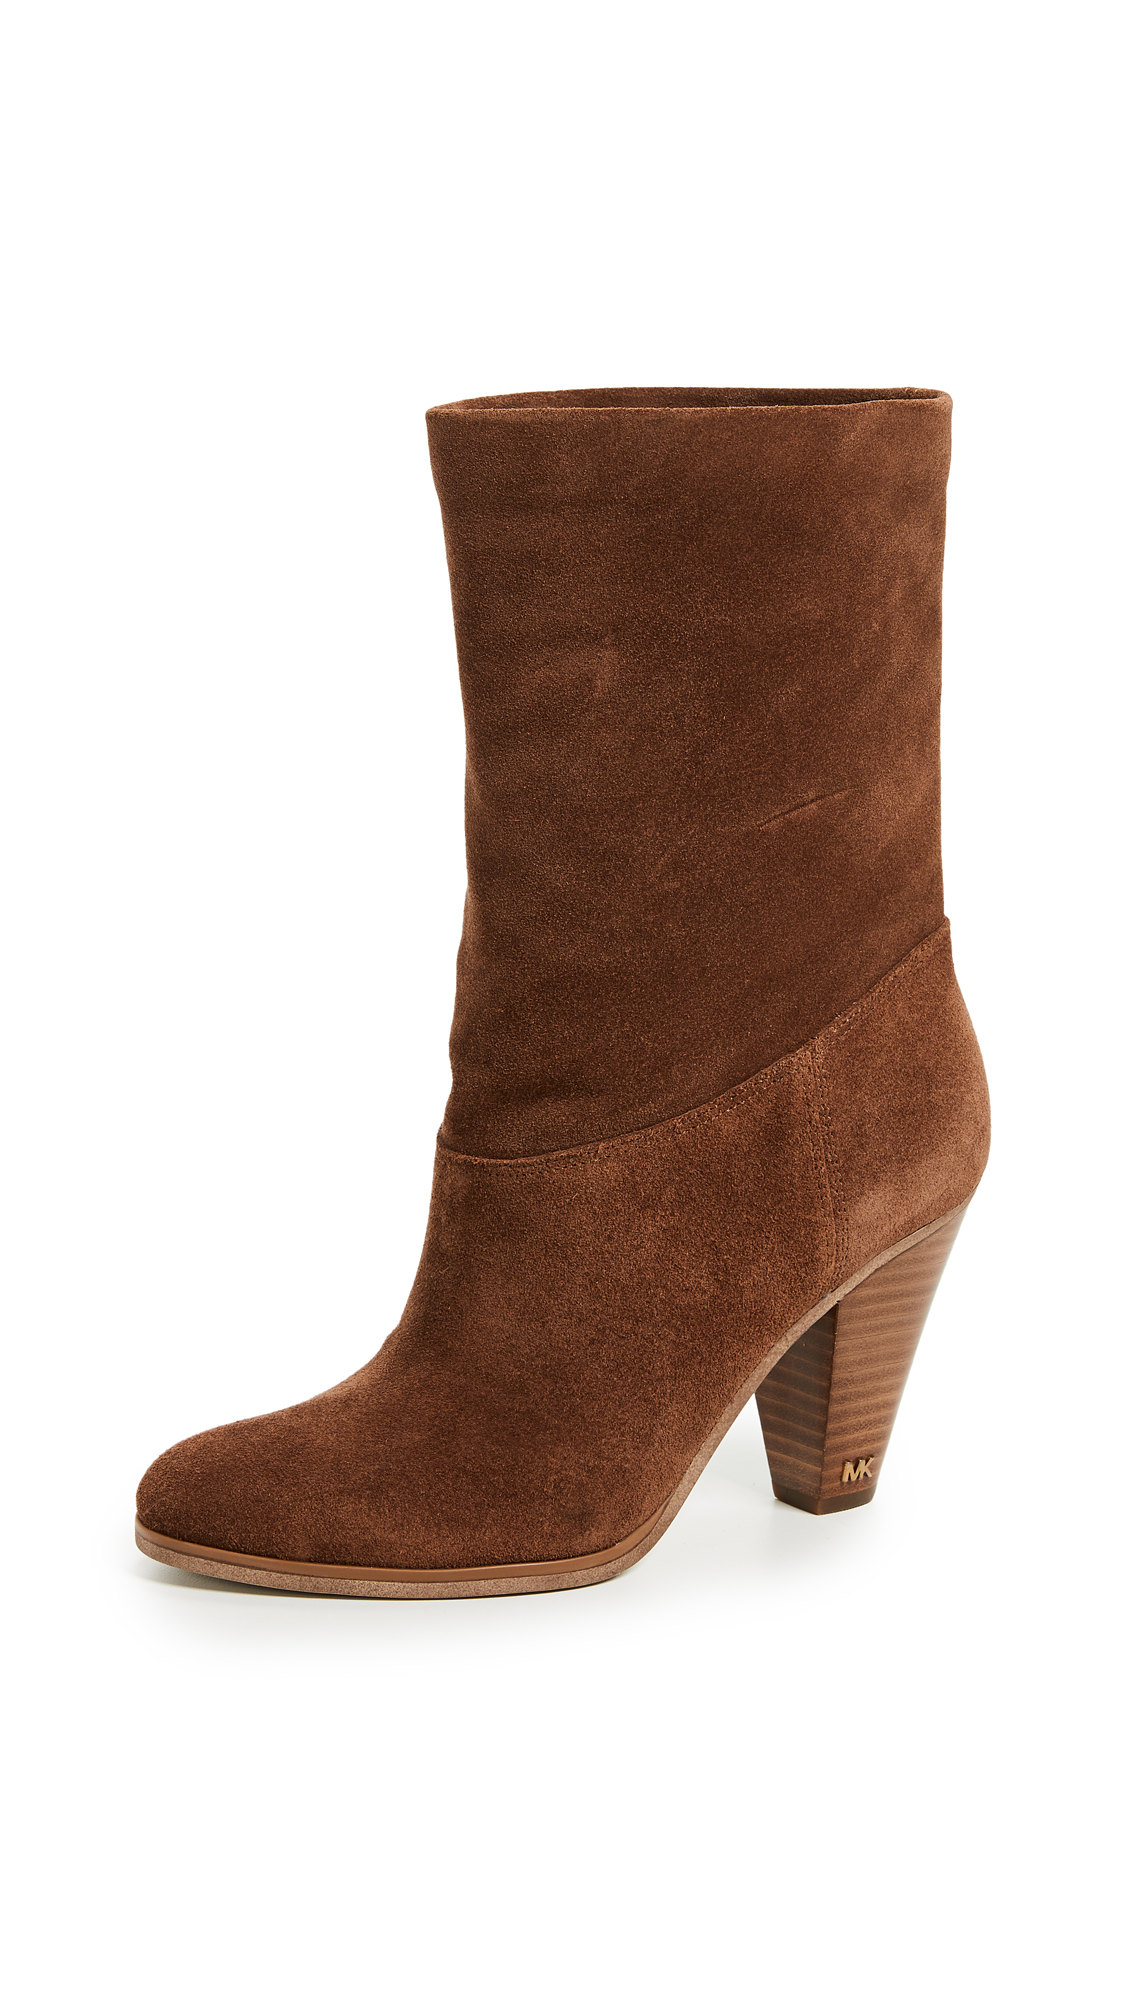 MICHAEL Michael Kors Divia Mid Shaft Booties - Dark Caramel